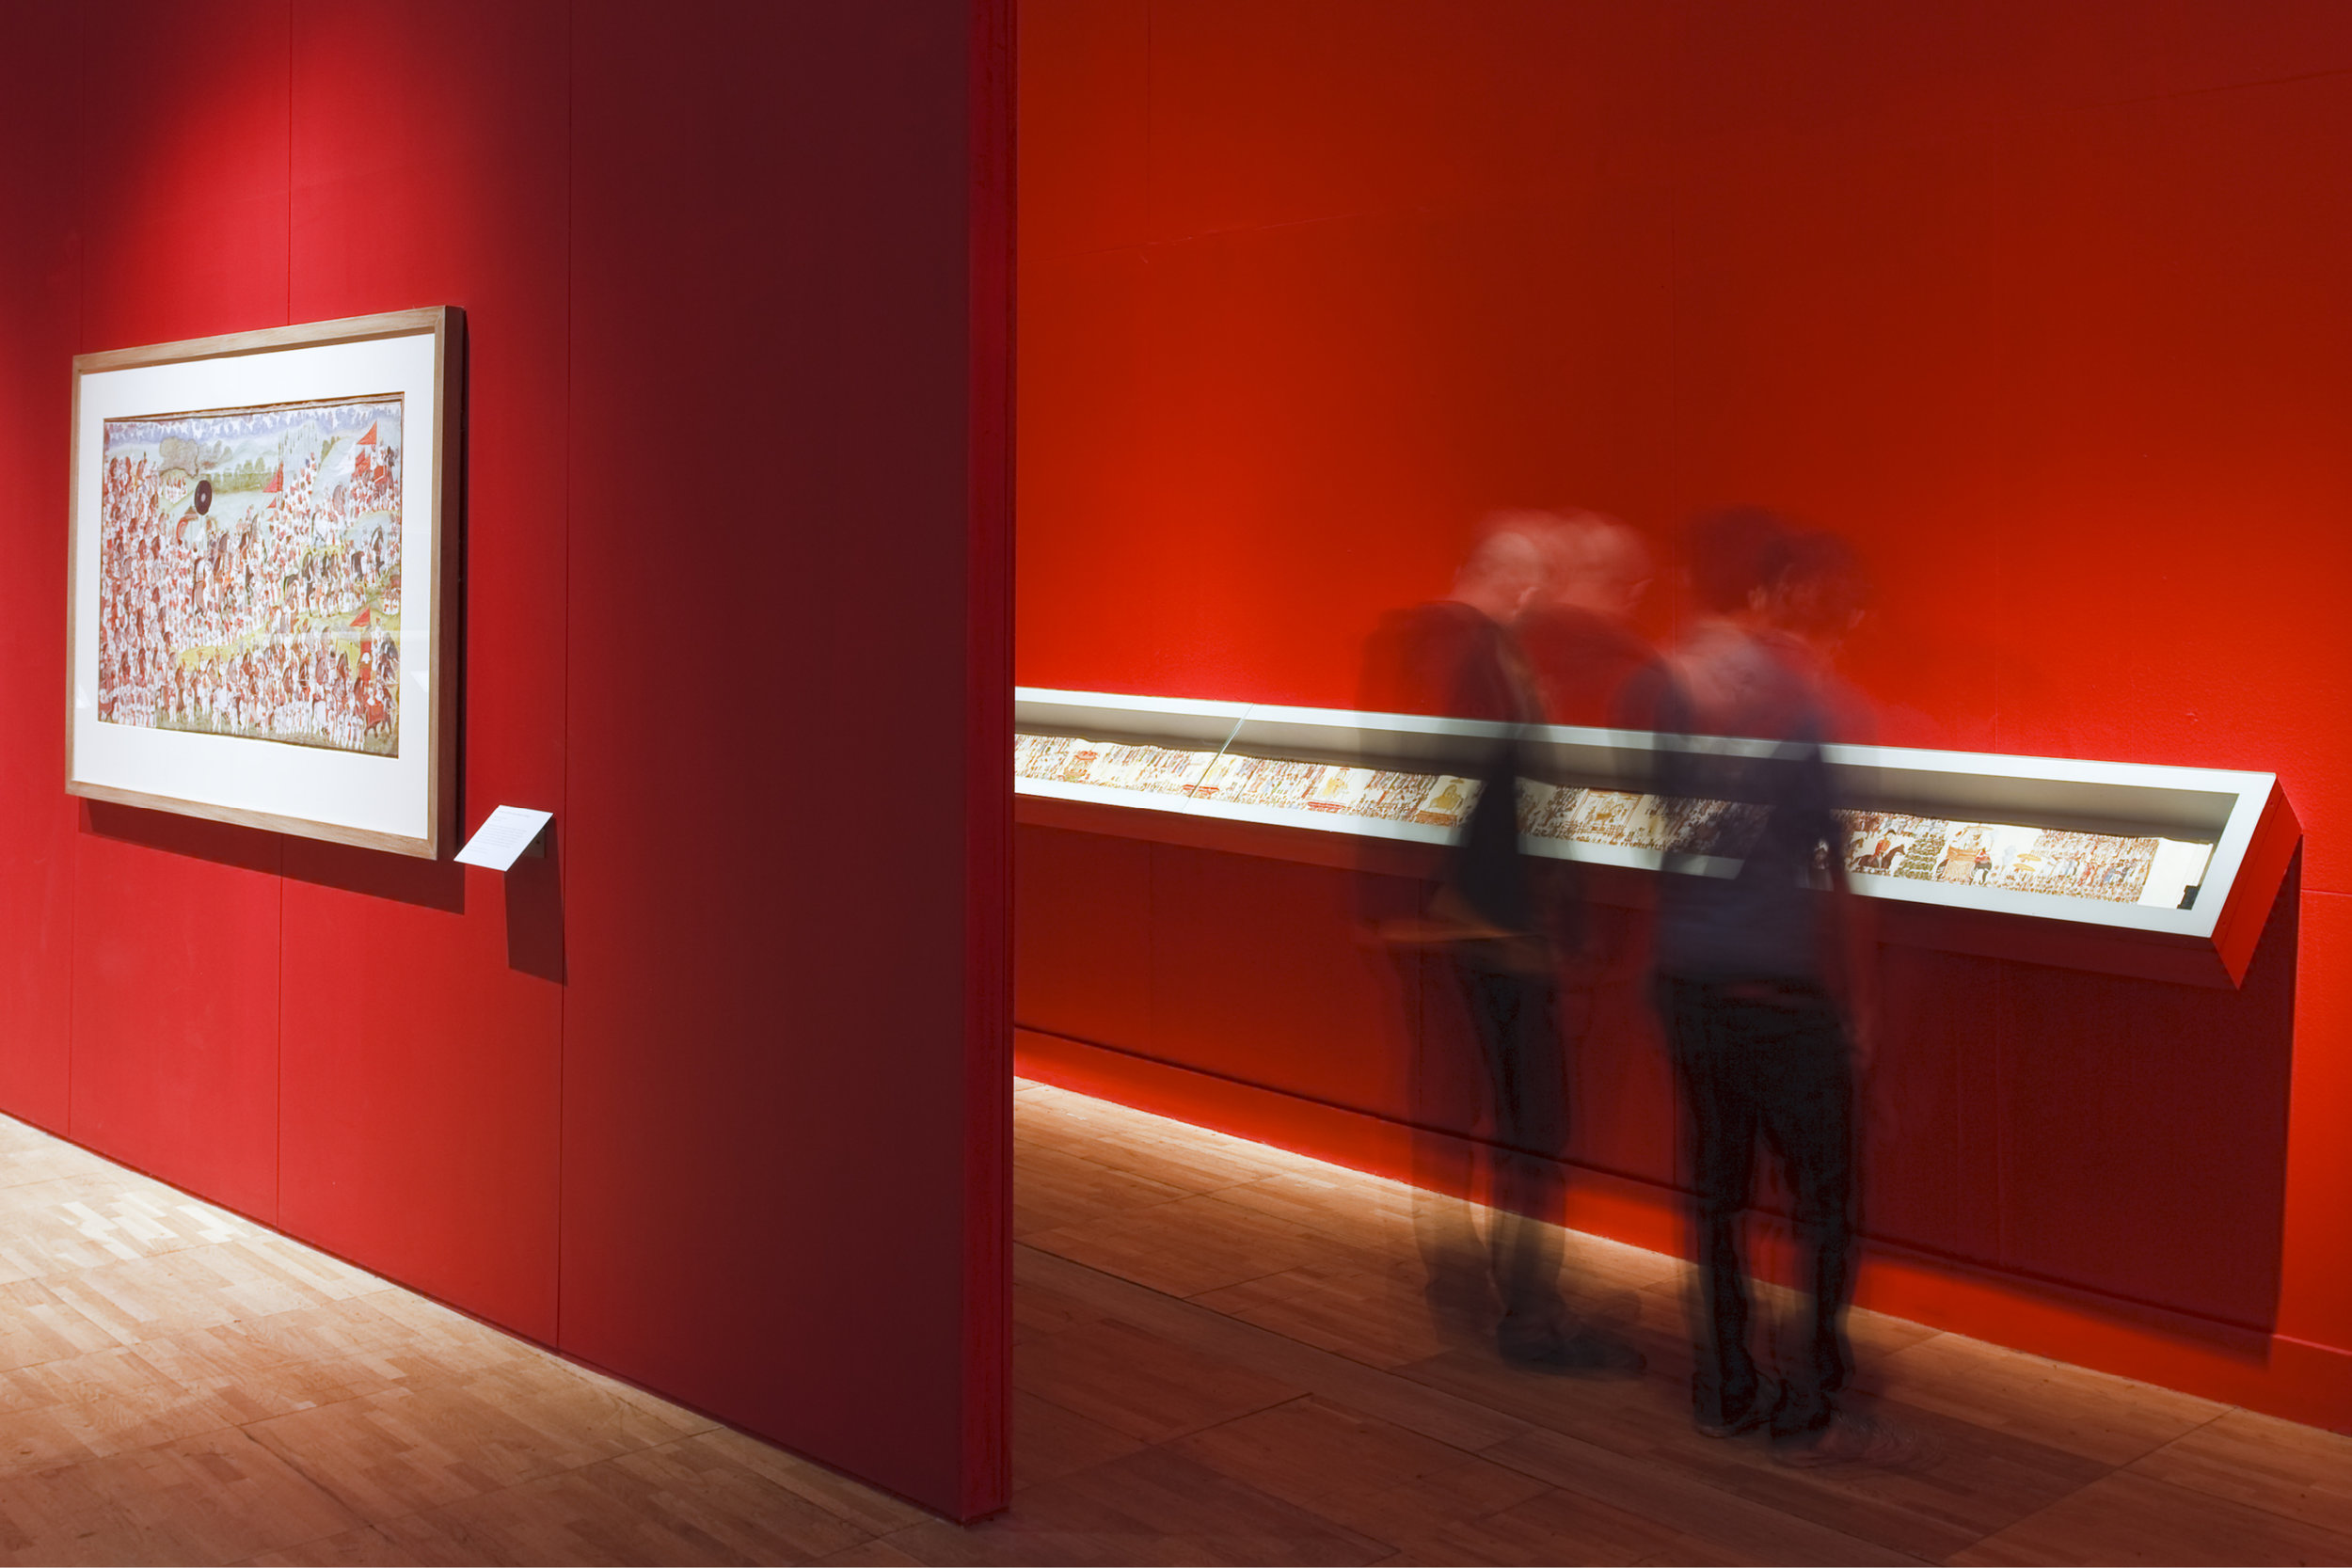 Exhibition Design for Indias Maharaja's at the Victoria and Albert Museum